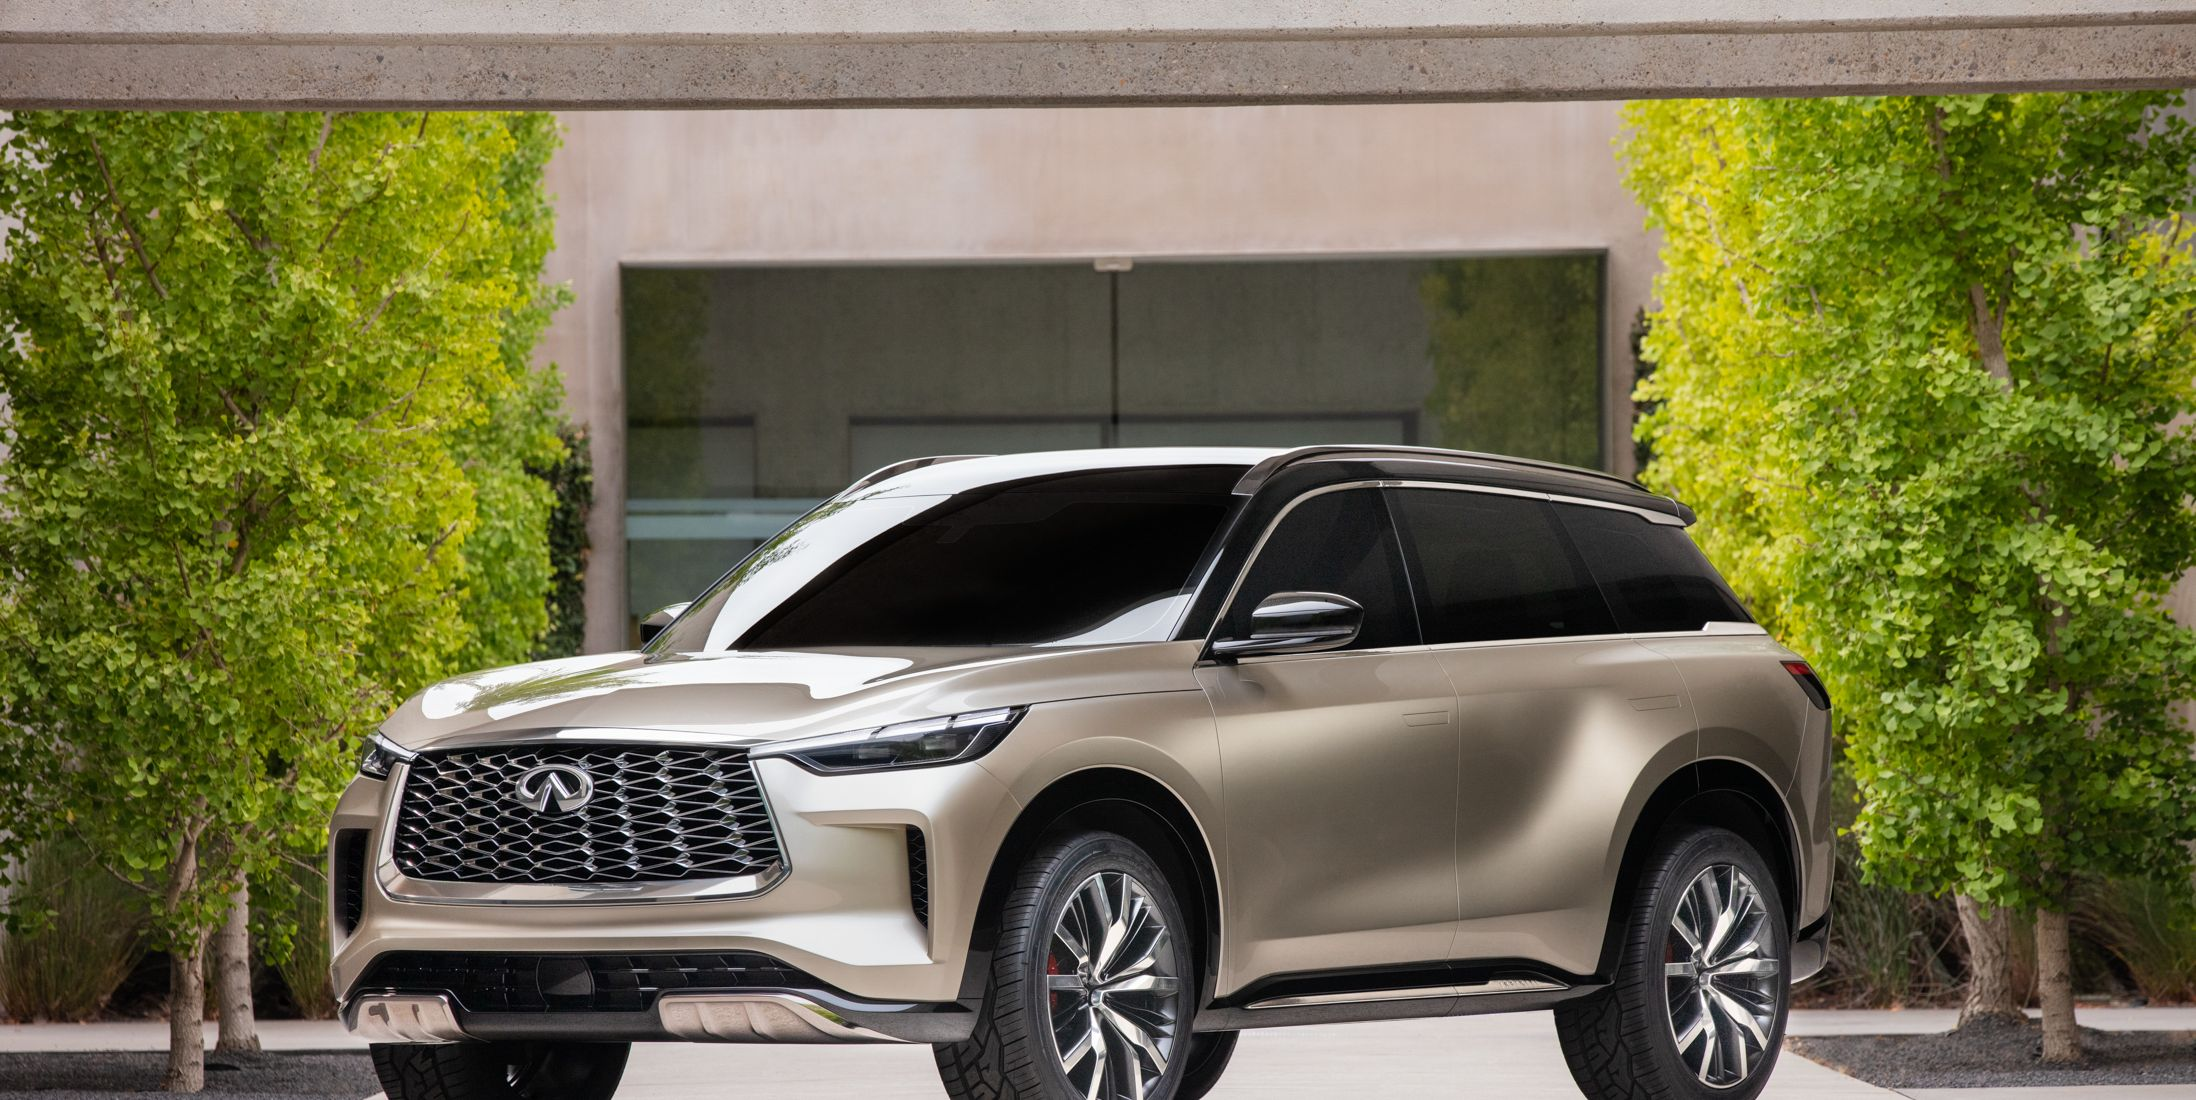 2021 Infiniti Qx60 Concept and Review